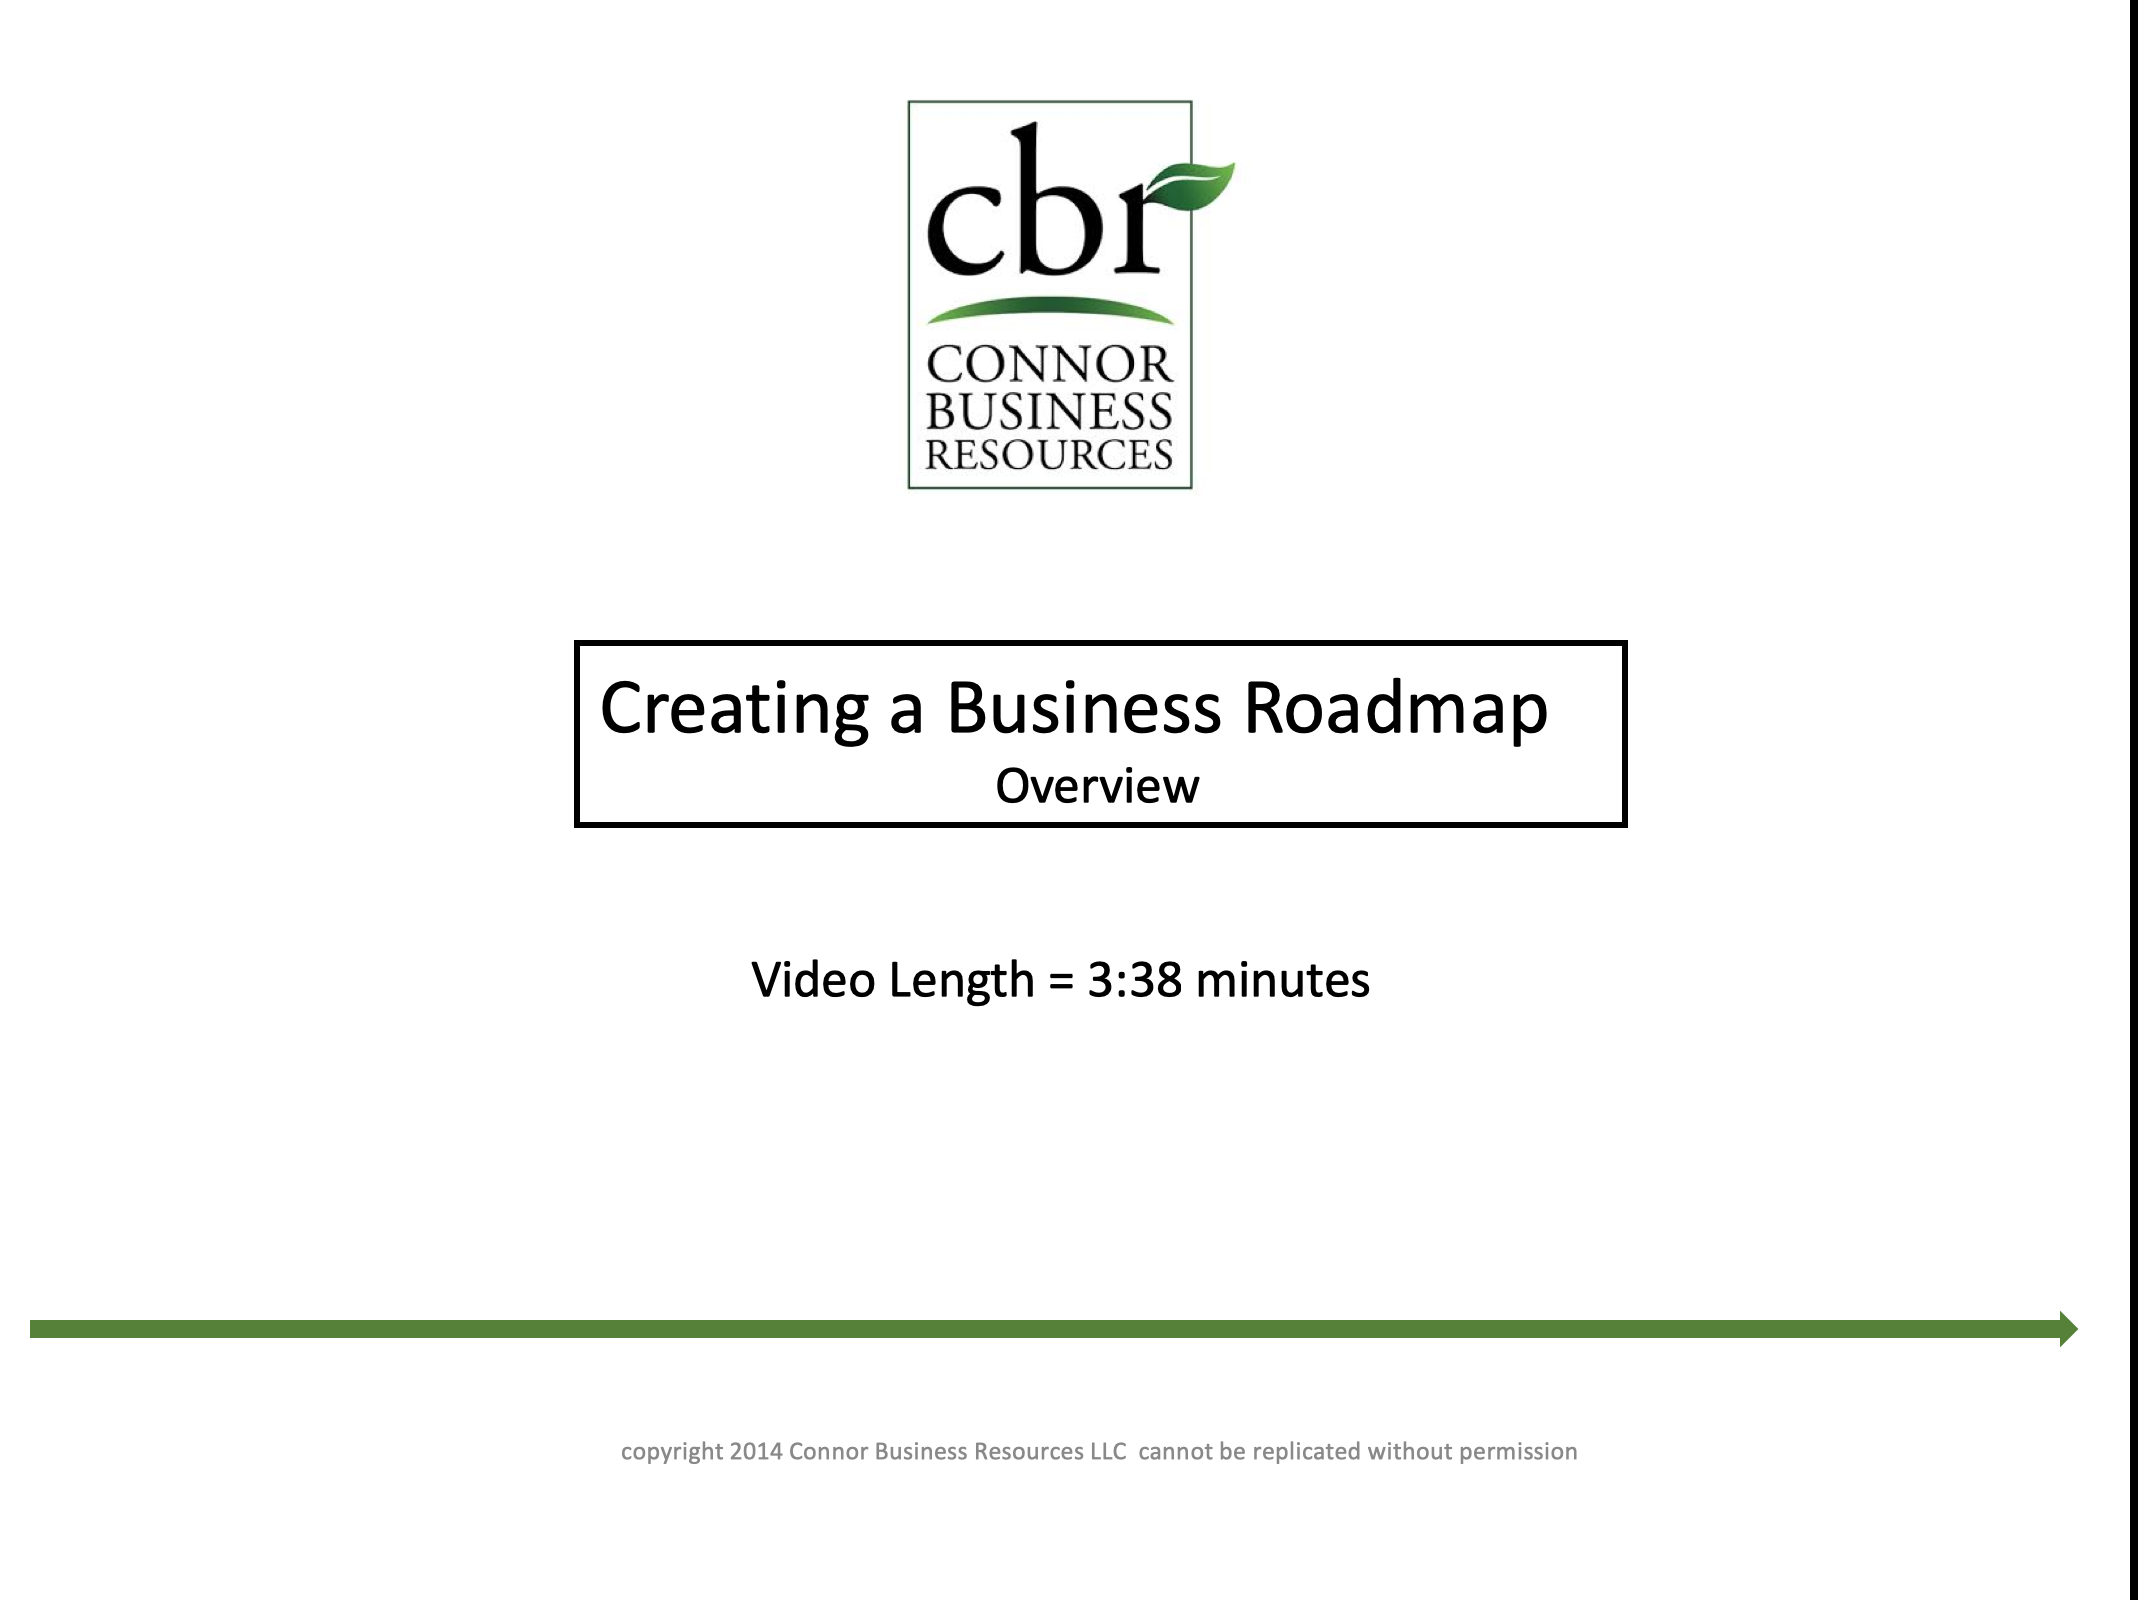 Strategic Planning (Business Roadmap) Overview